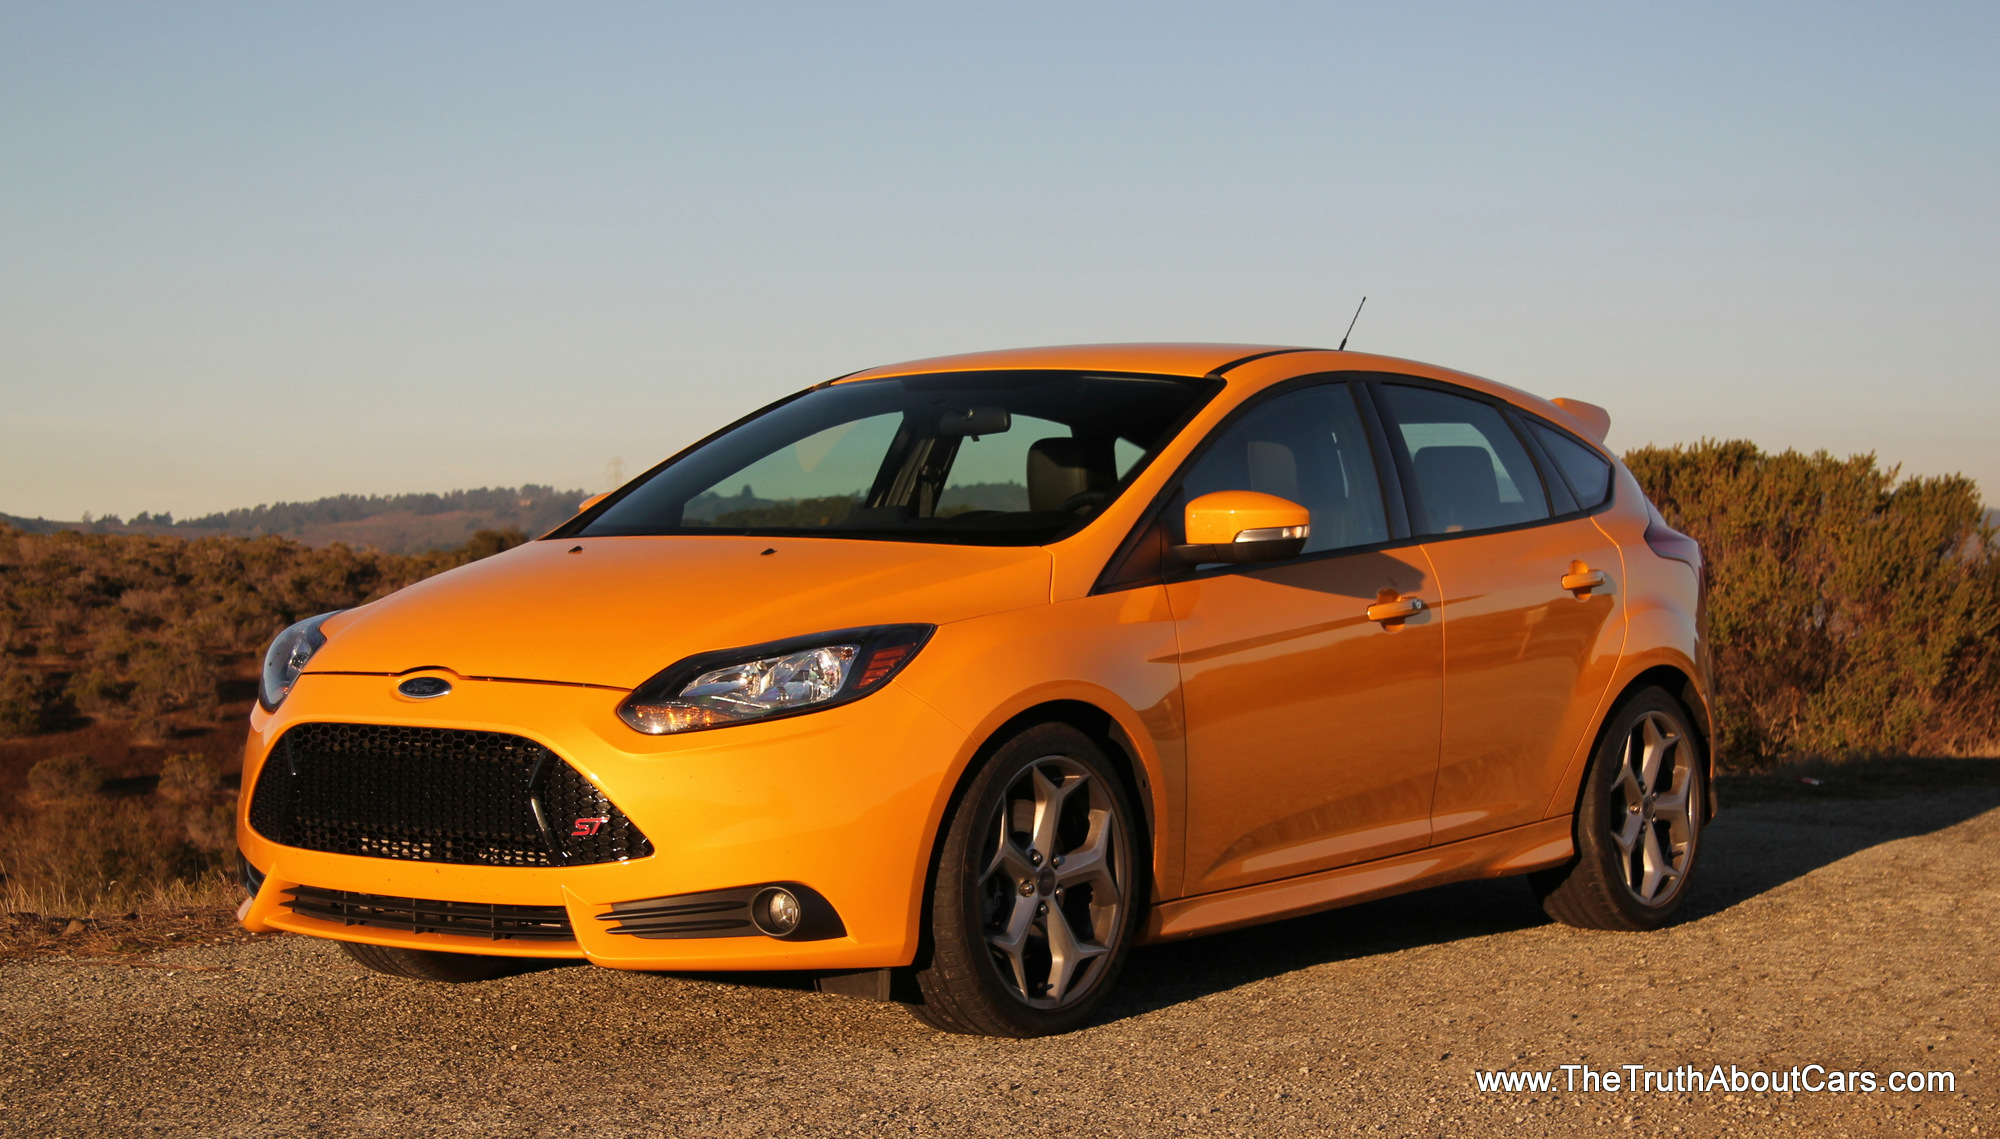 Review: 2014 Ford Focus ST (With Video) - The Truth About Cars